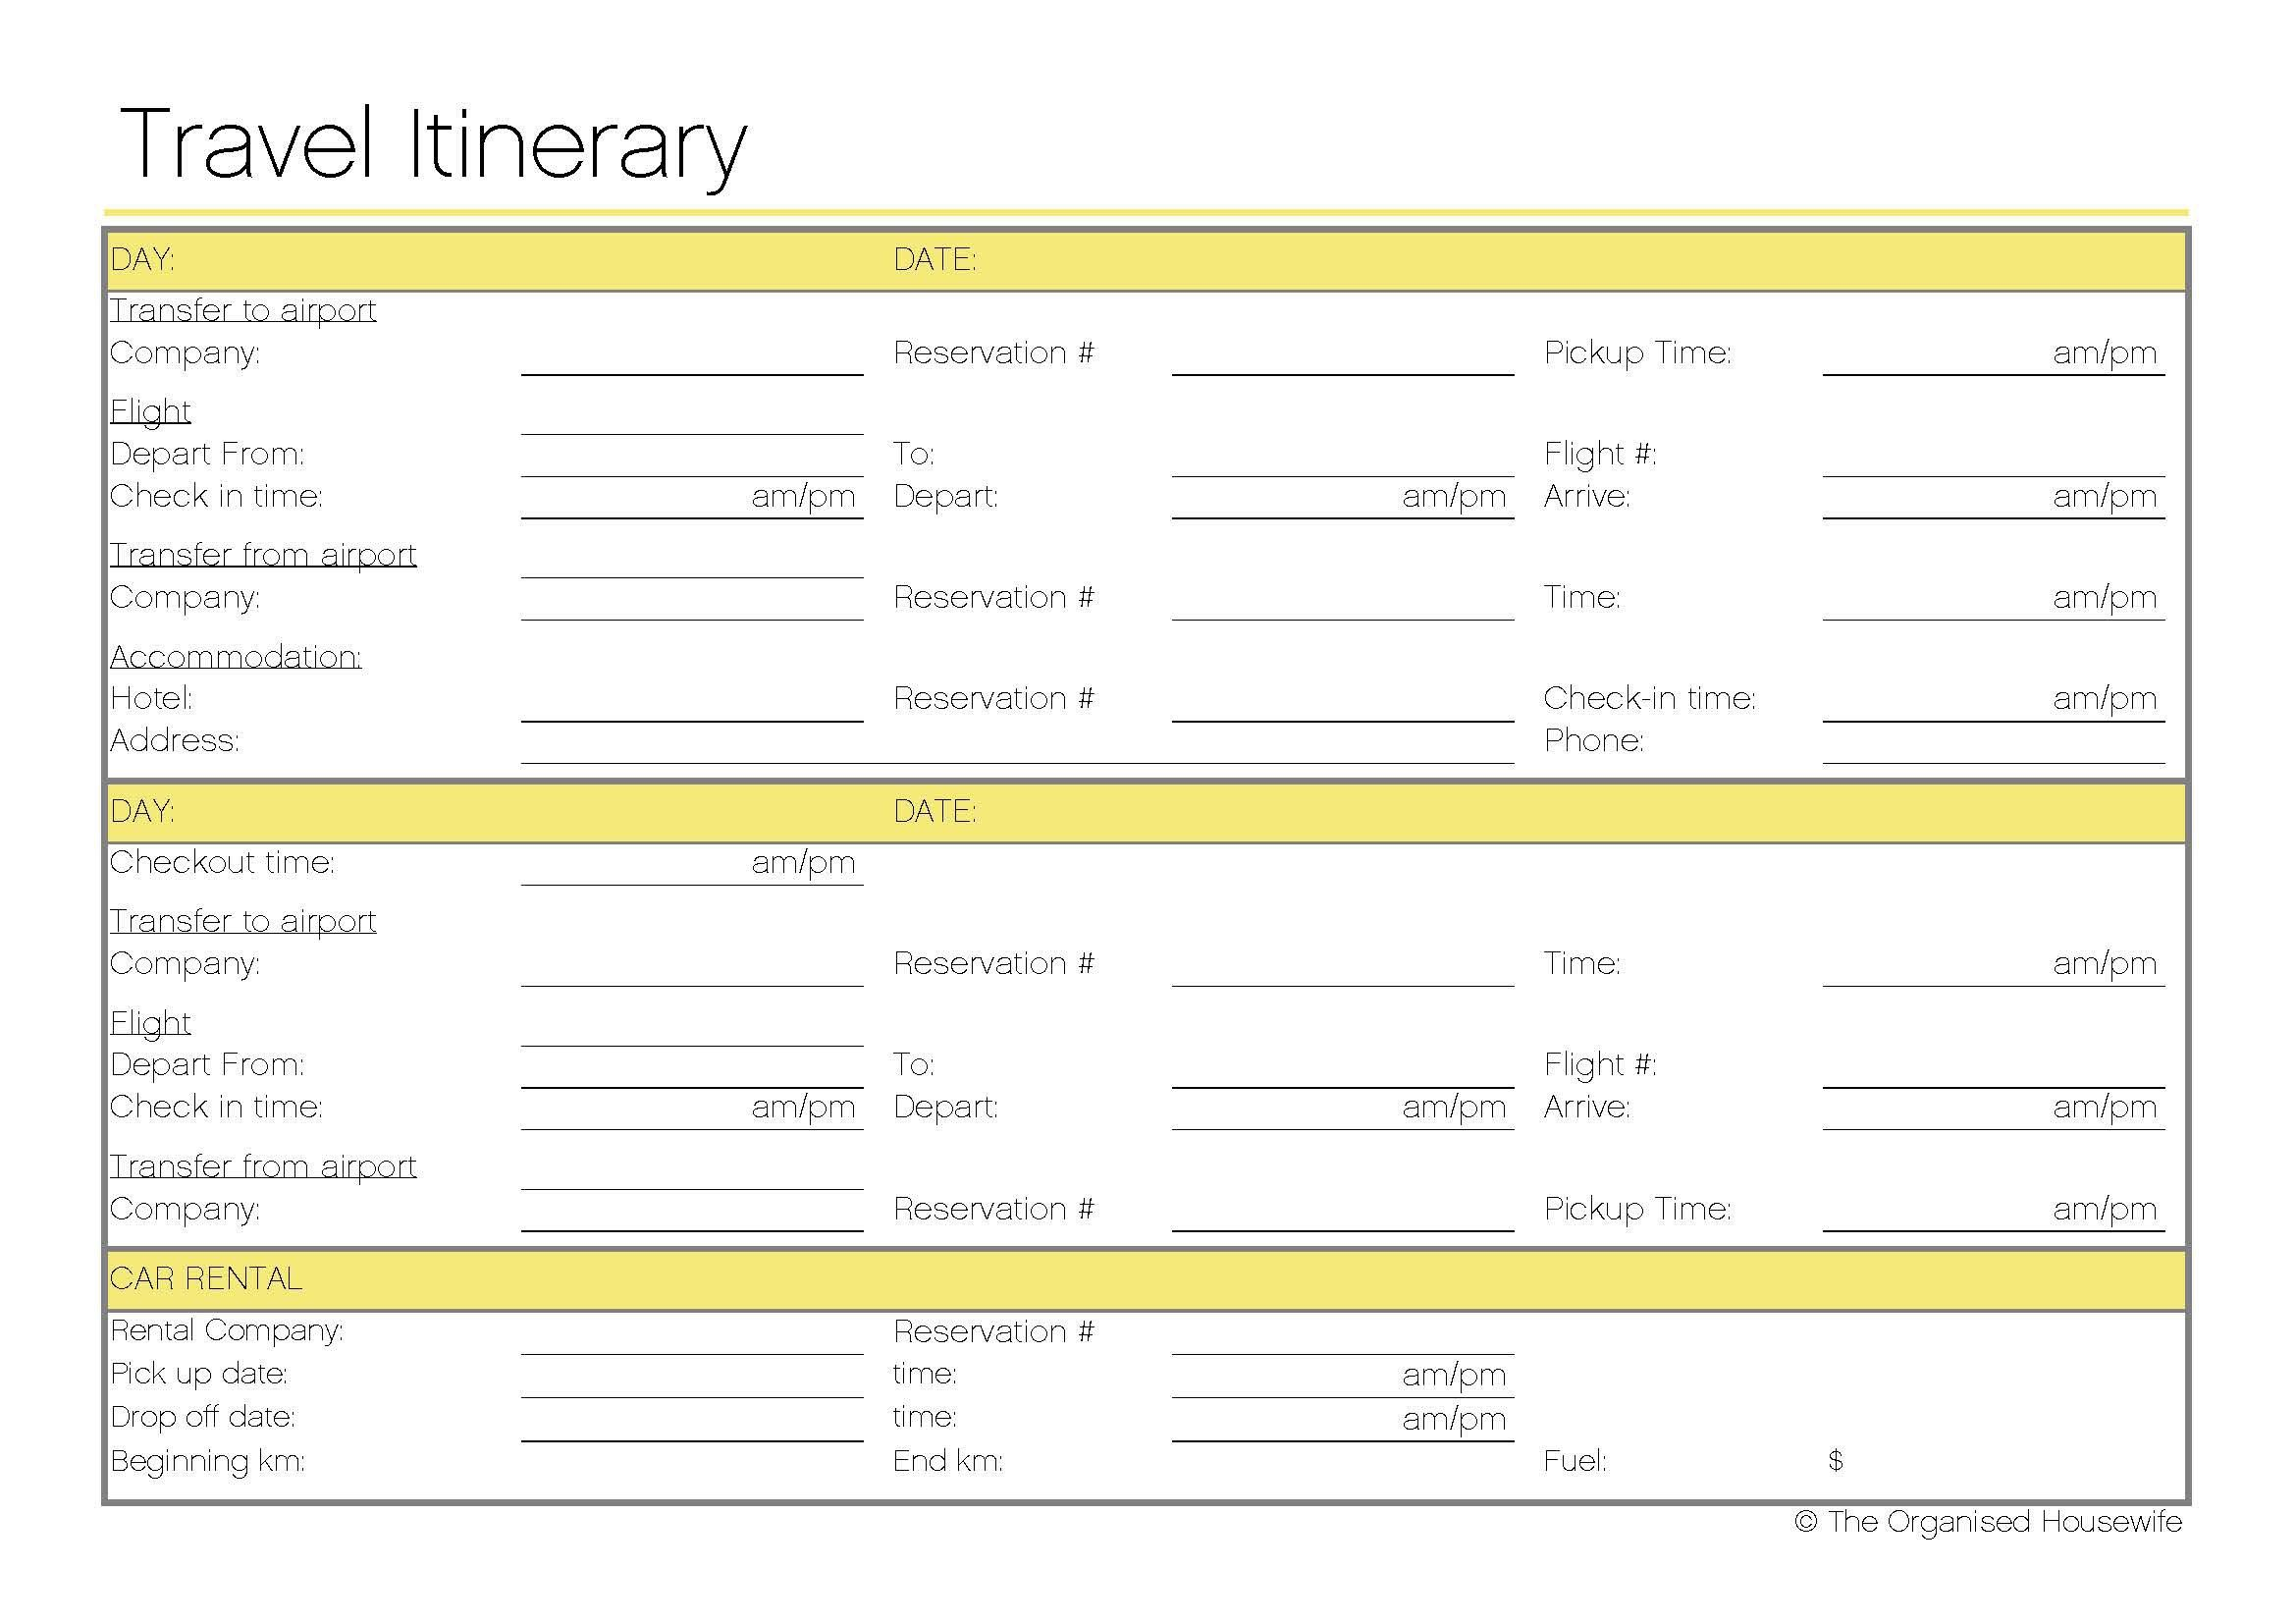 Free printable travel itinerary travel itinerary for Trip planning itinerary template